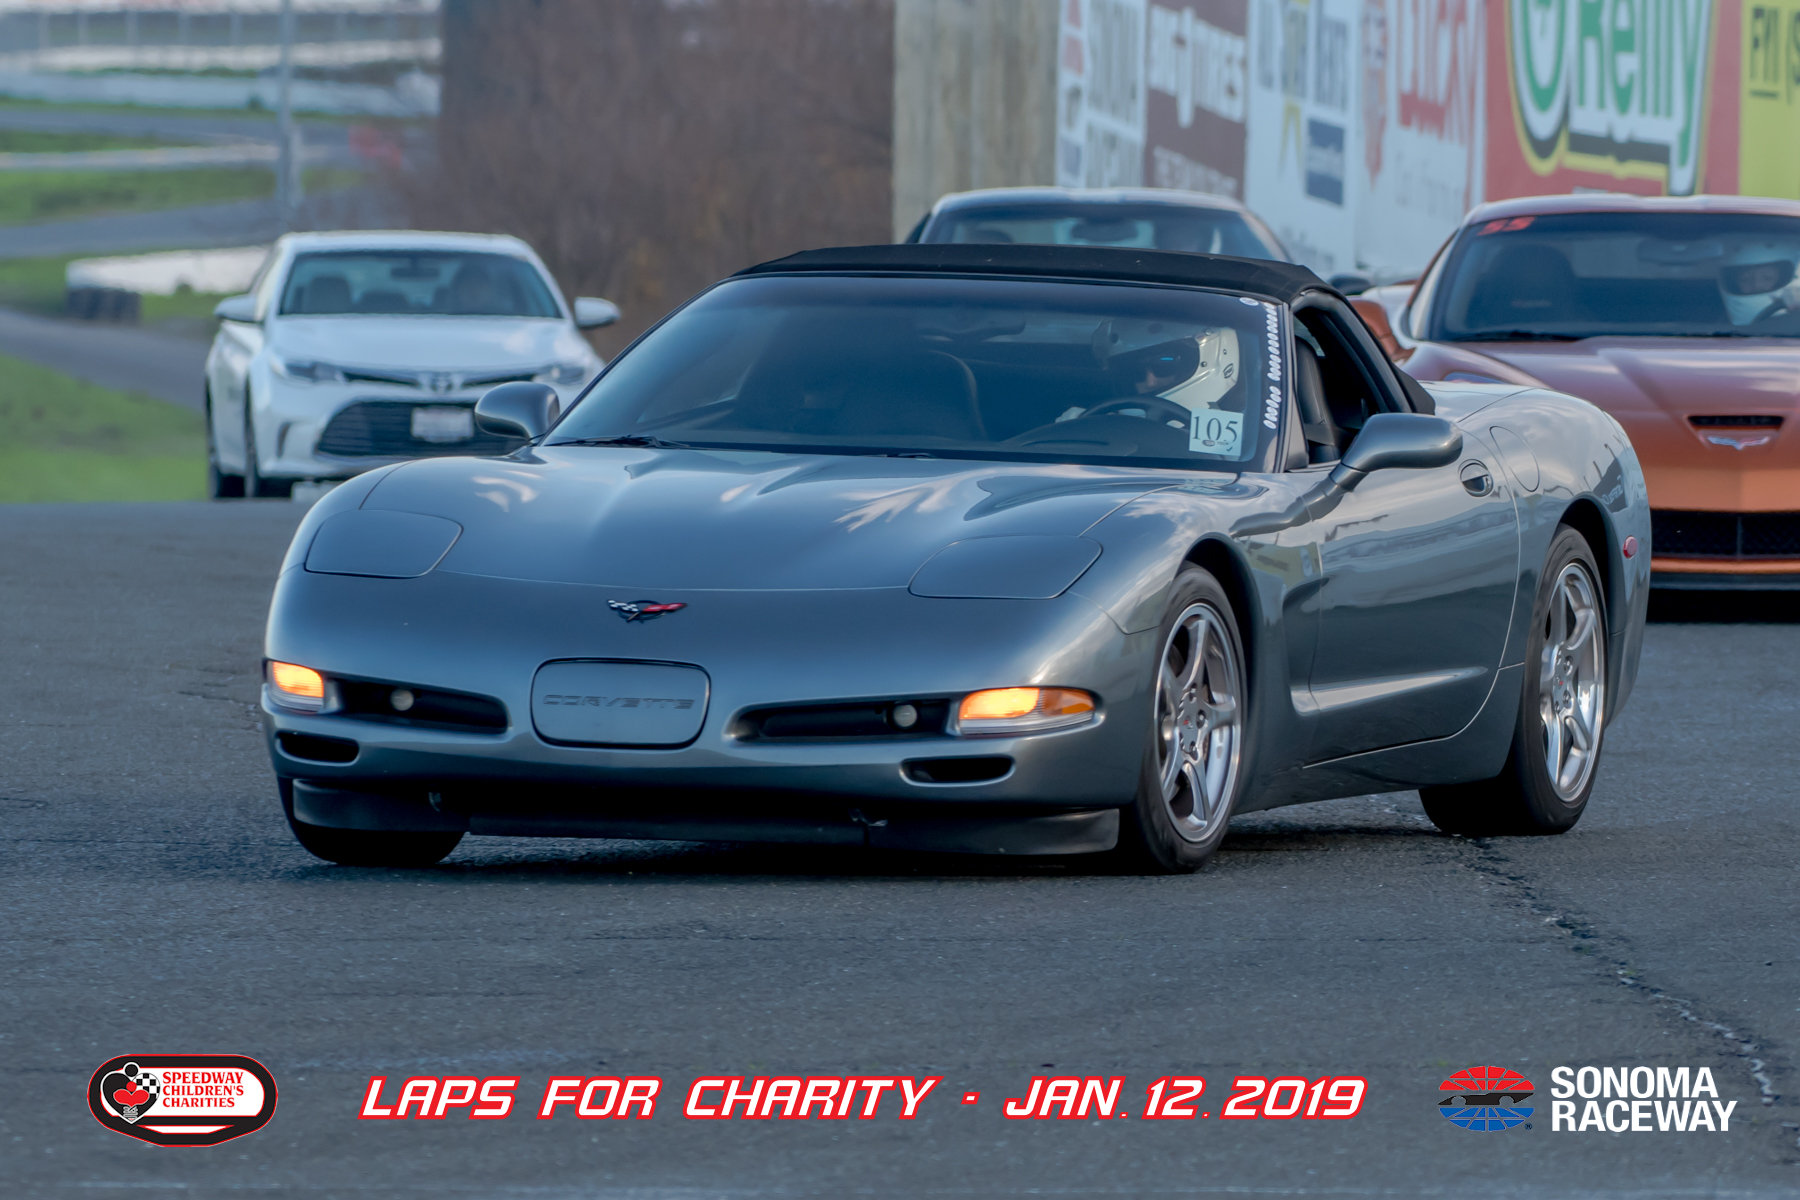 Laps for Charity